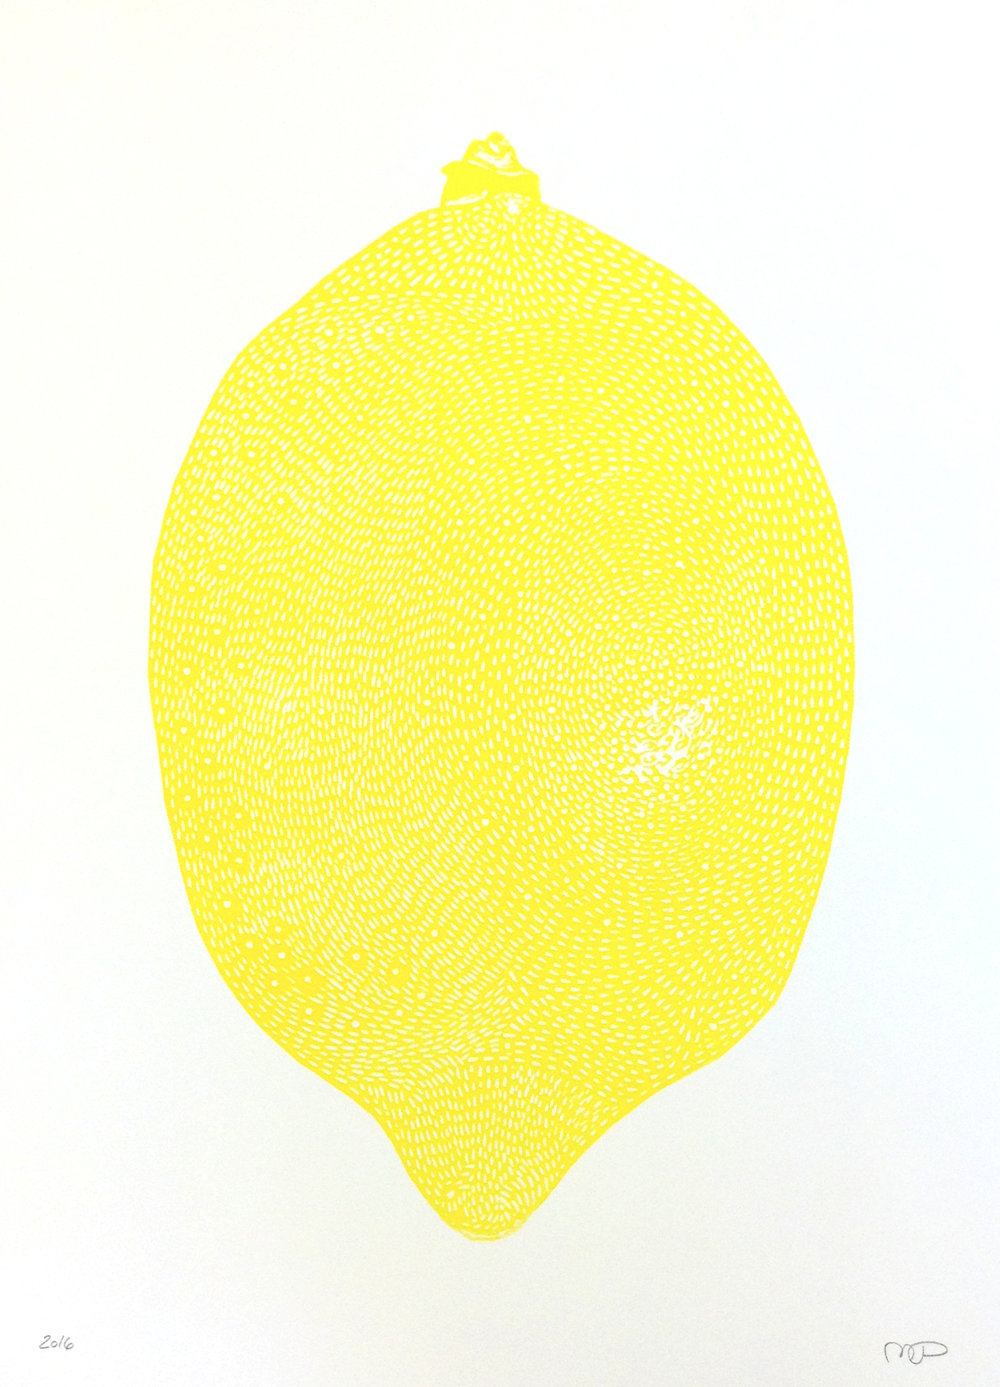 M. Petersen, Lemon